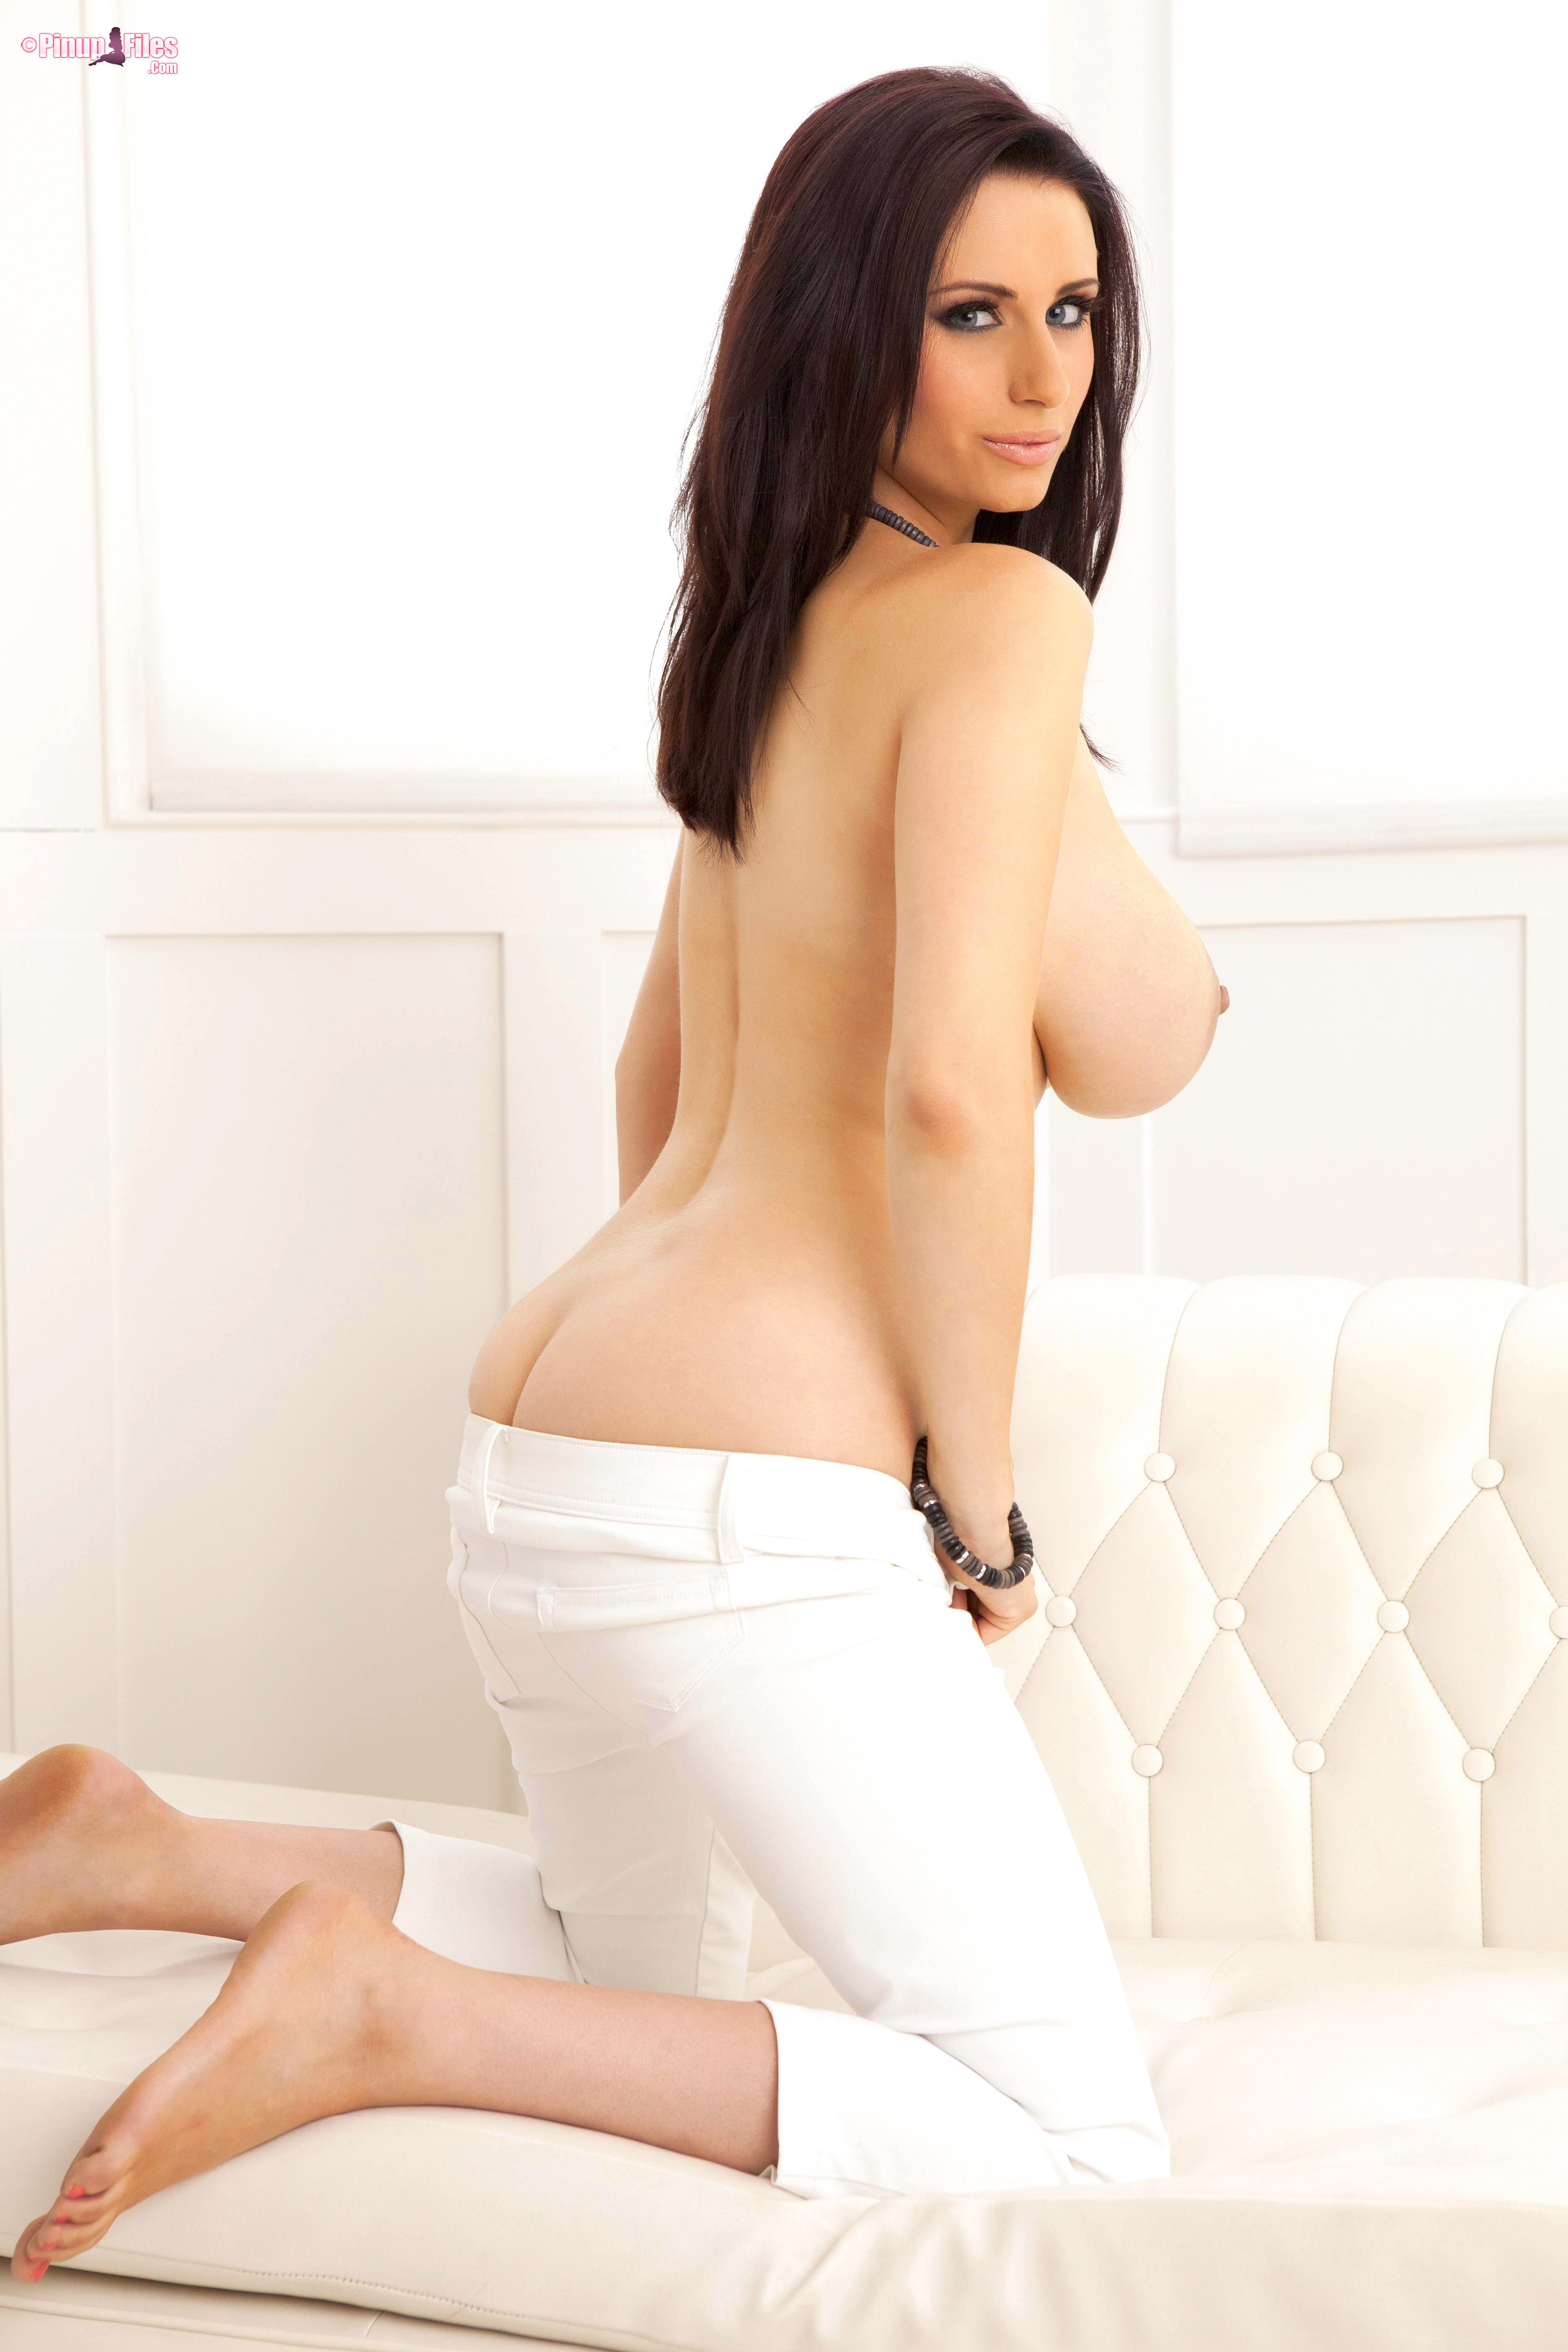 Sammy Braddy Huge Boobs Naked and White Trousers